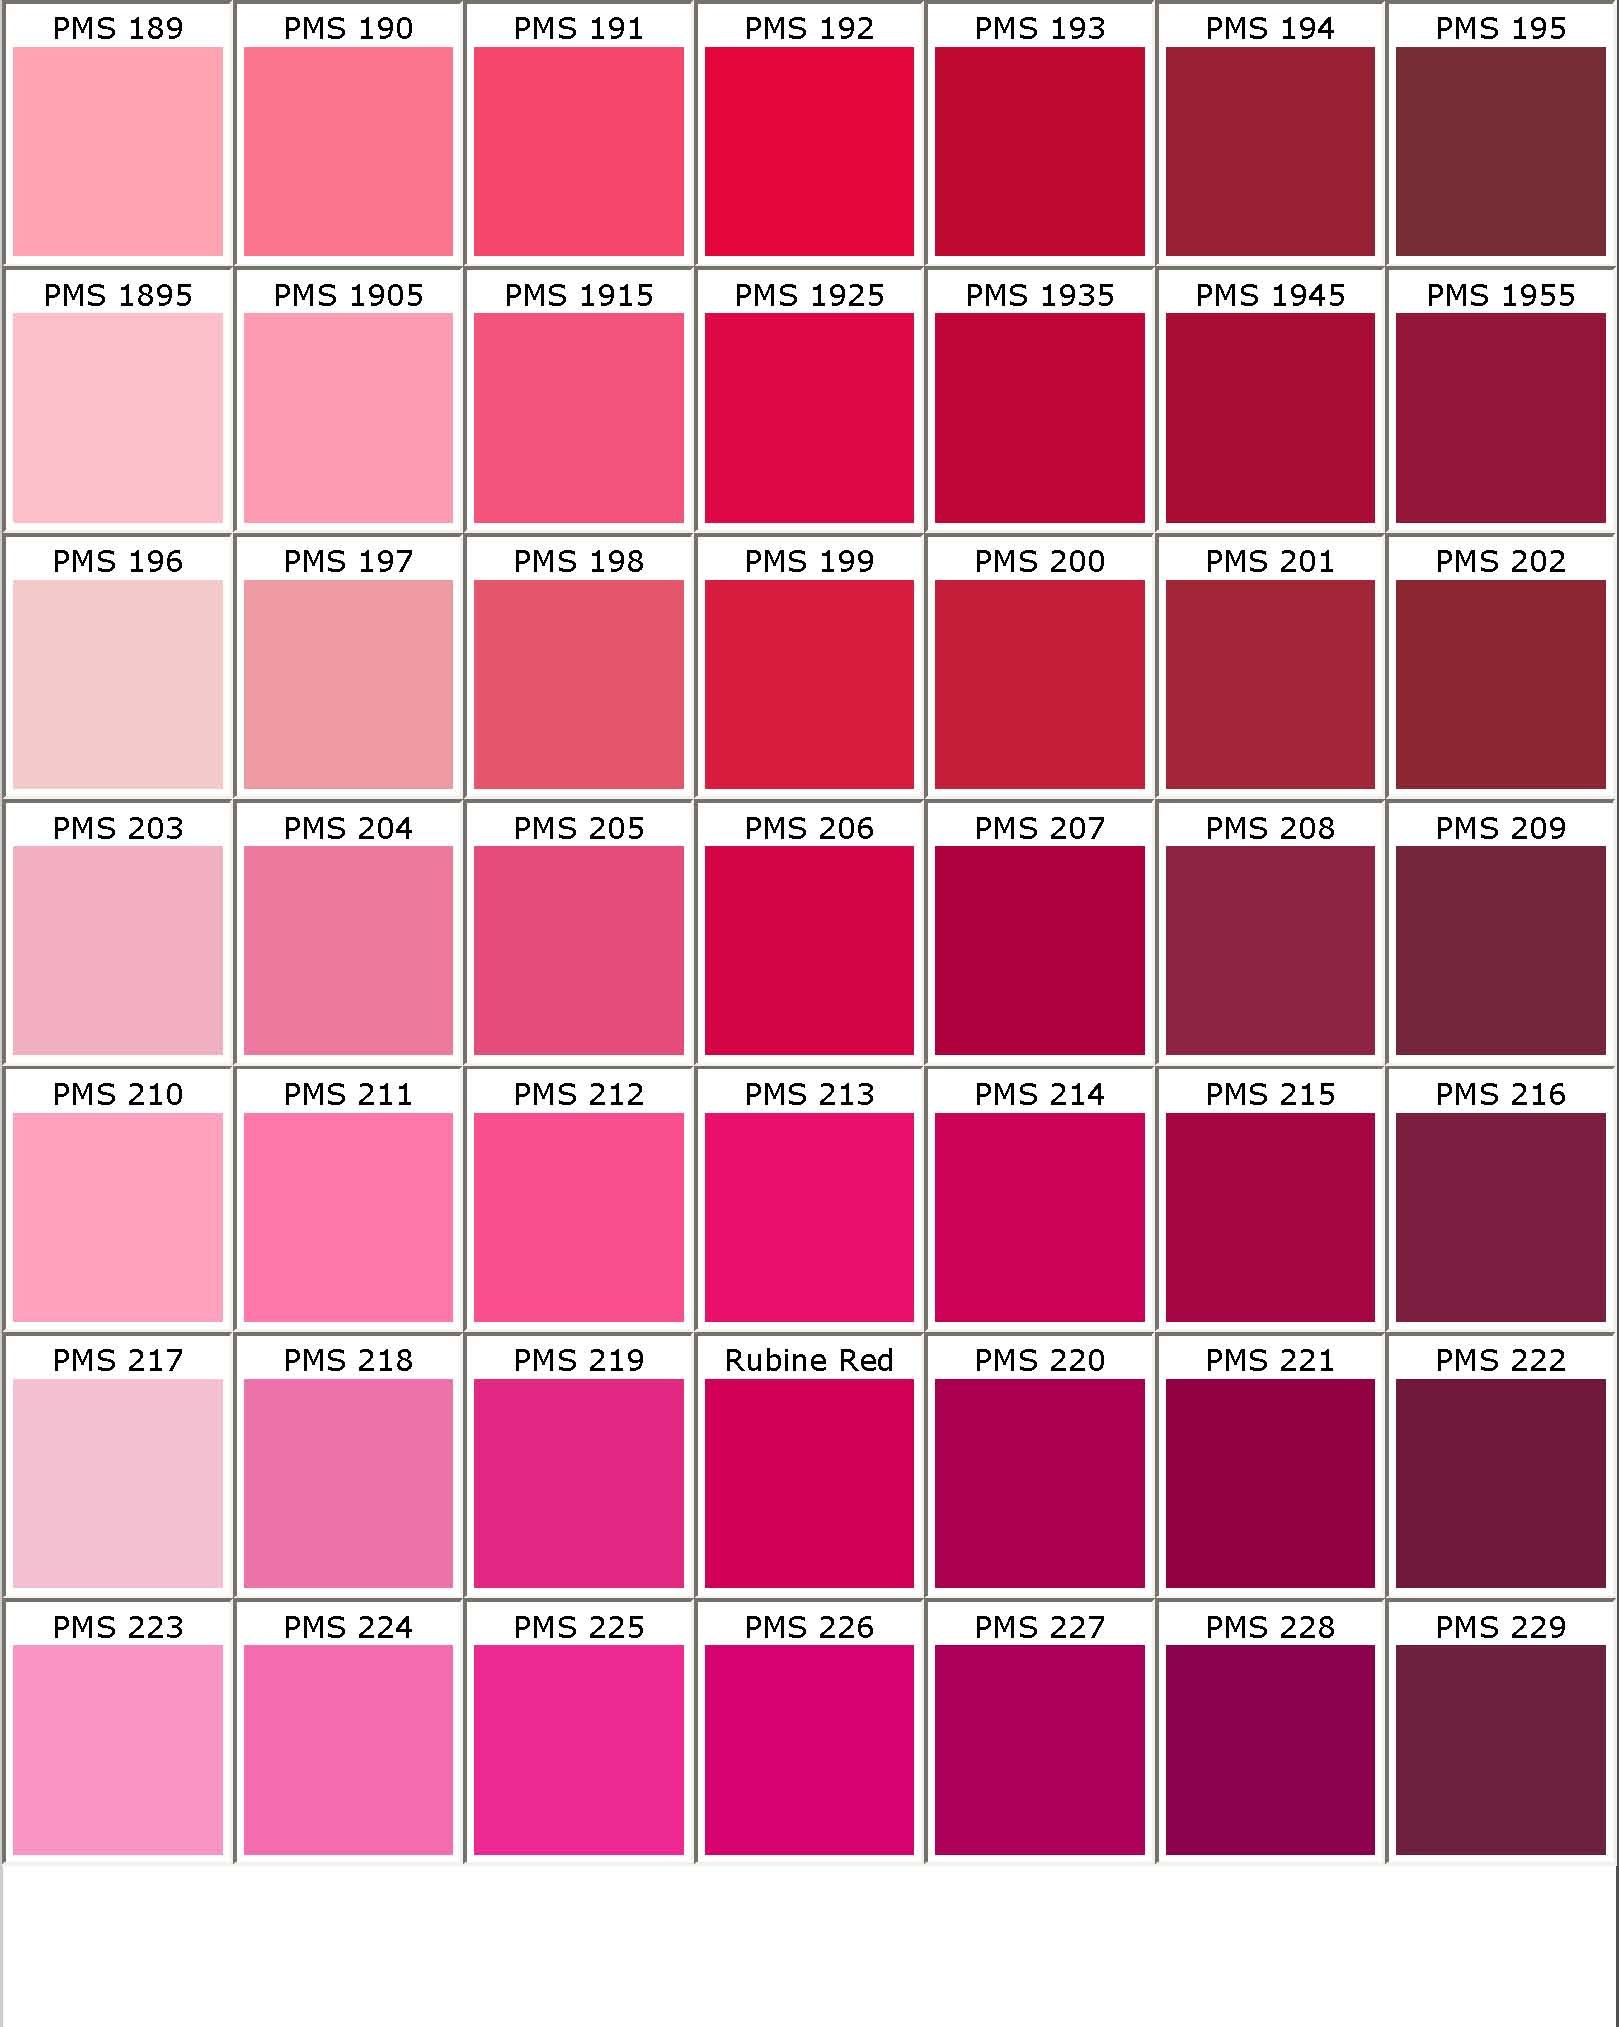 I Like The Top Row Of This Color Chart PMS 189 To 194 Pink ChartColour PalettesColour